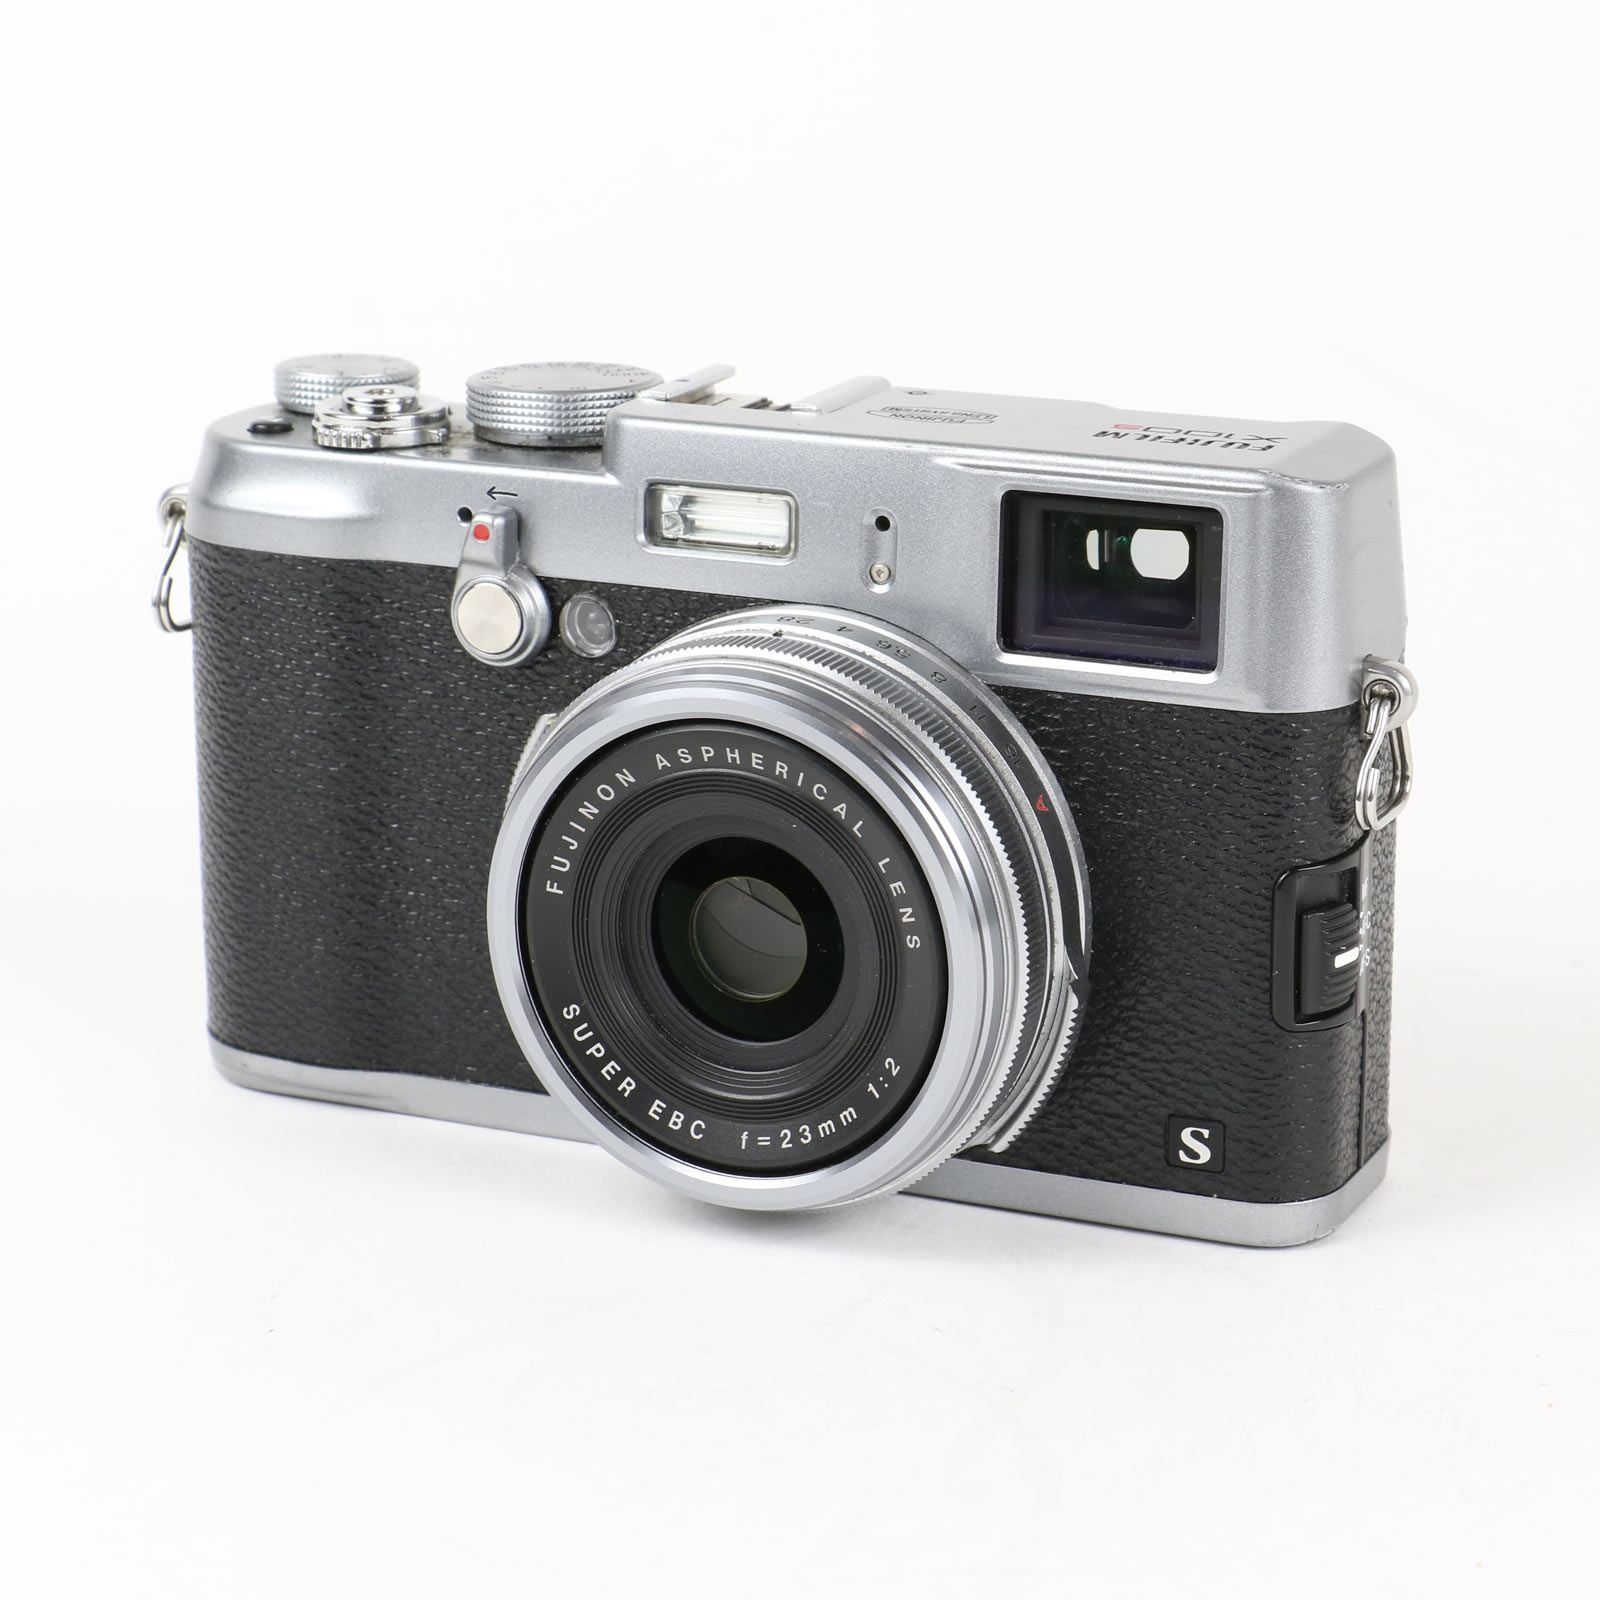 Image of Used Fuji FinePix X100S Digital Camera - Silver